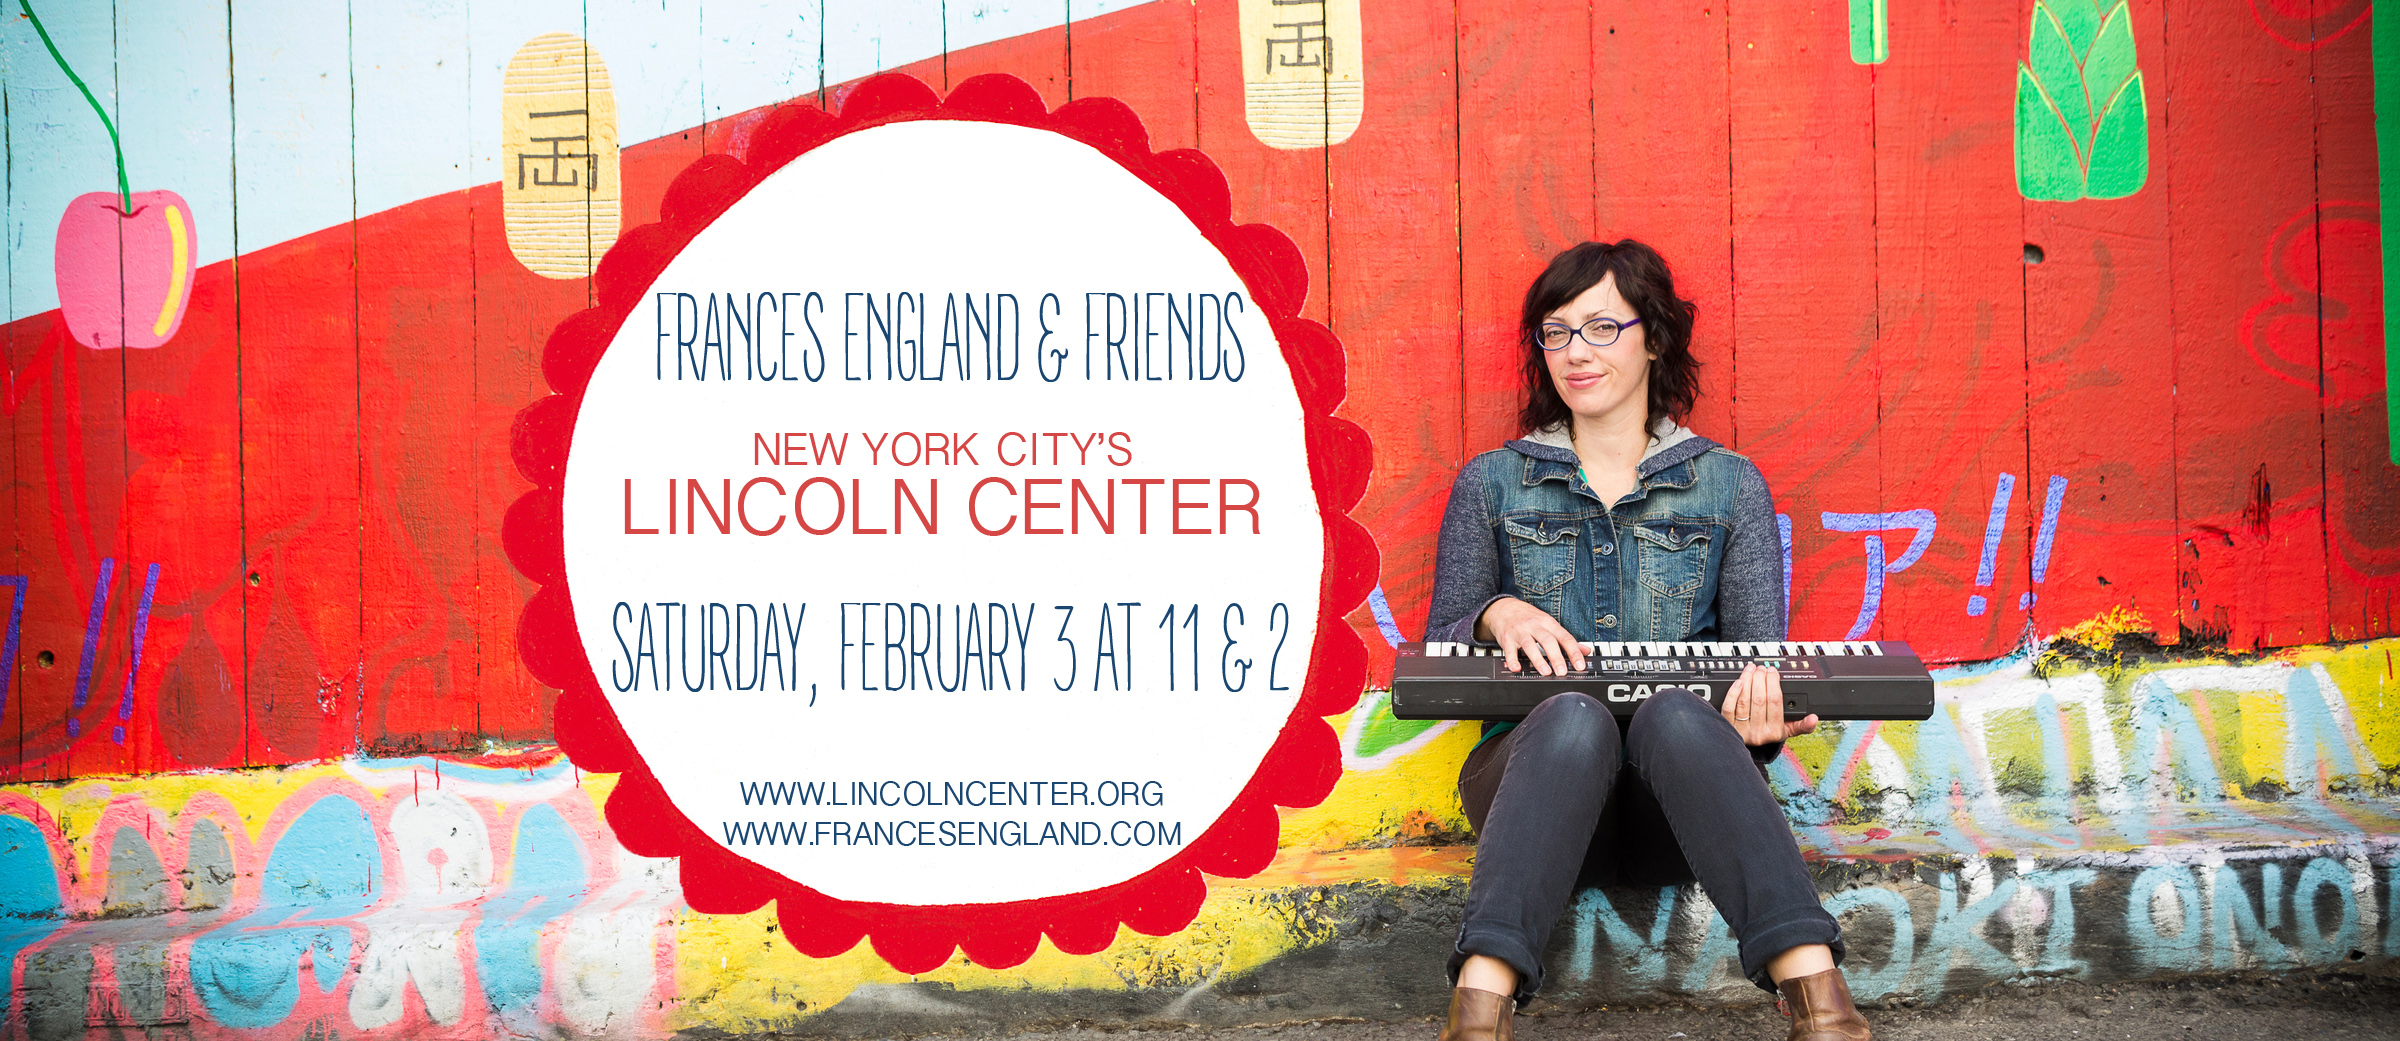 We are so excited and honored to be playing two shows at Lincoln Center! If you are in the NYC area please come sing with us! xoxoxo f